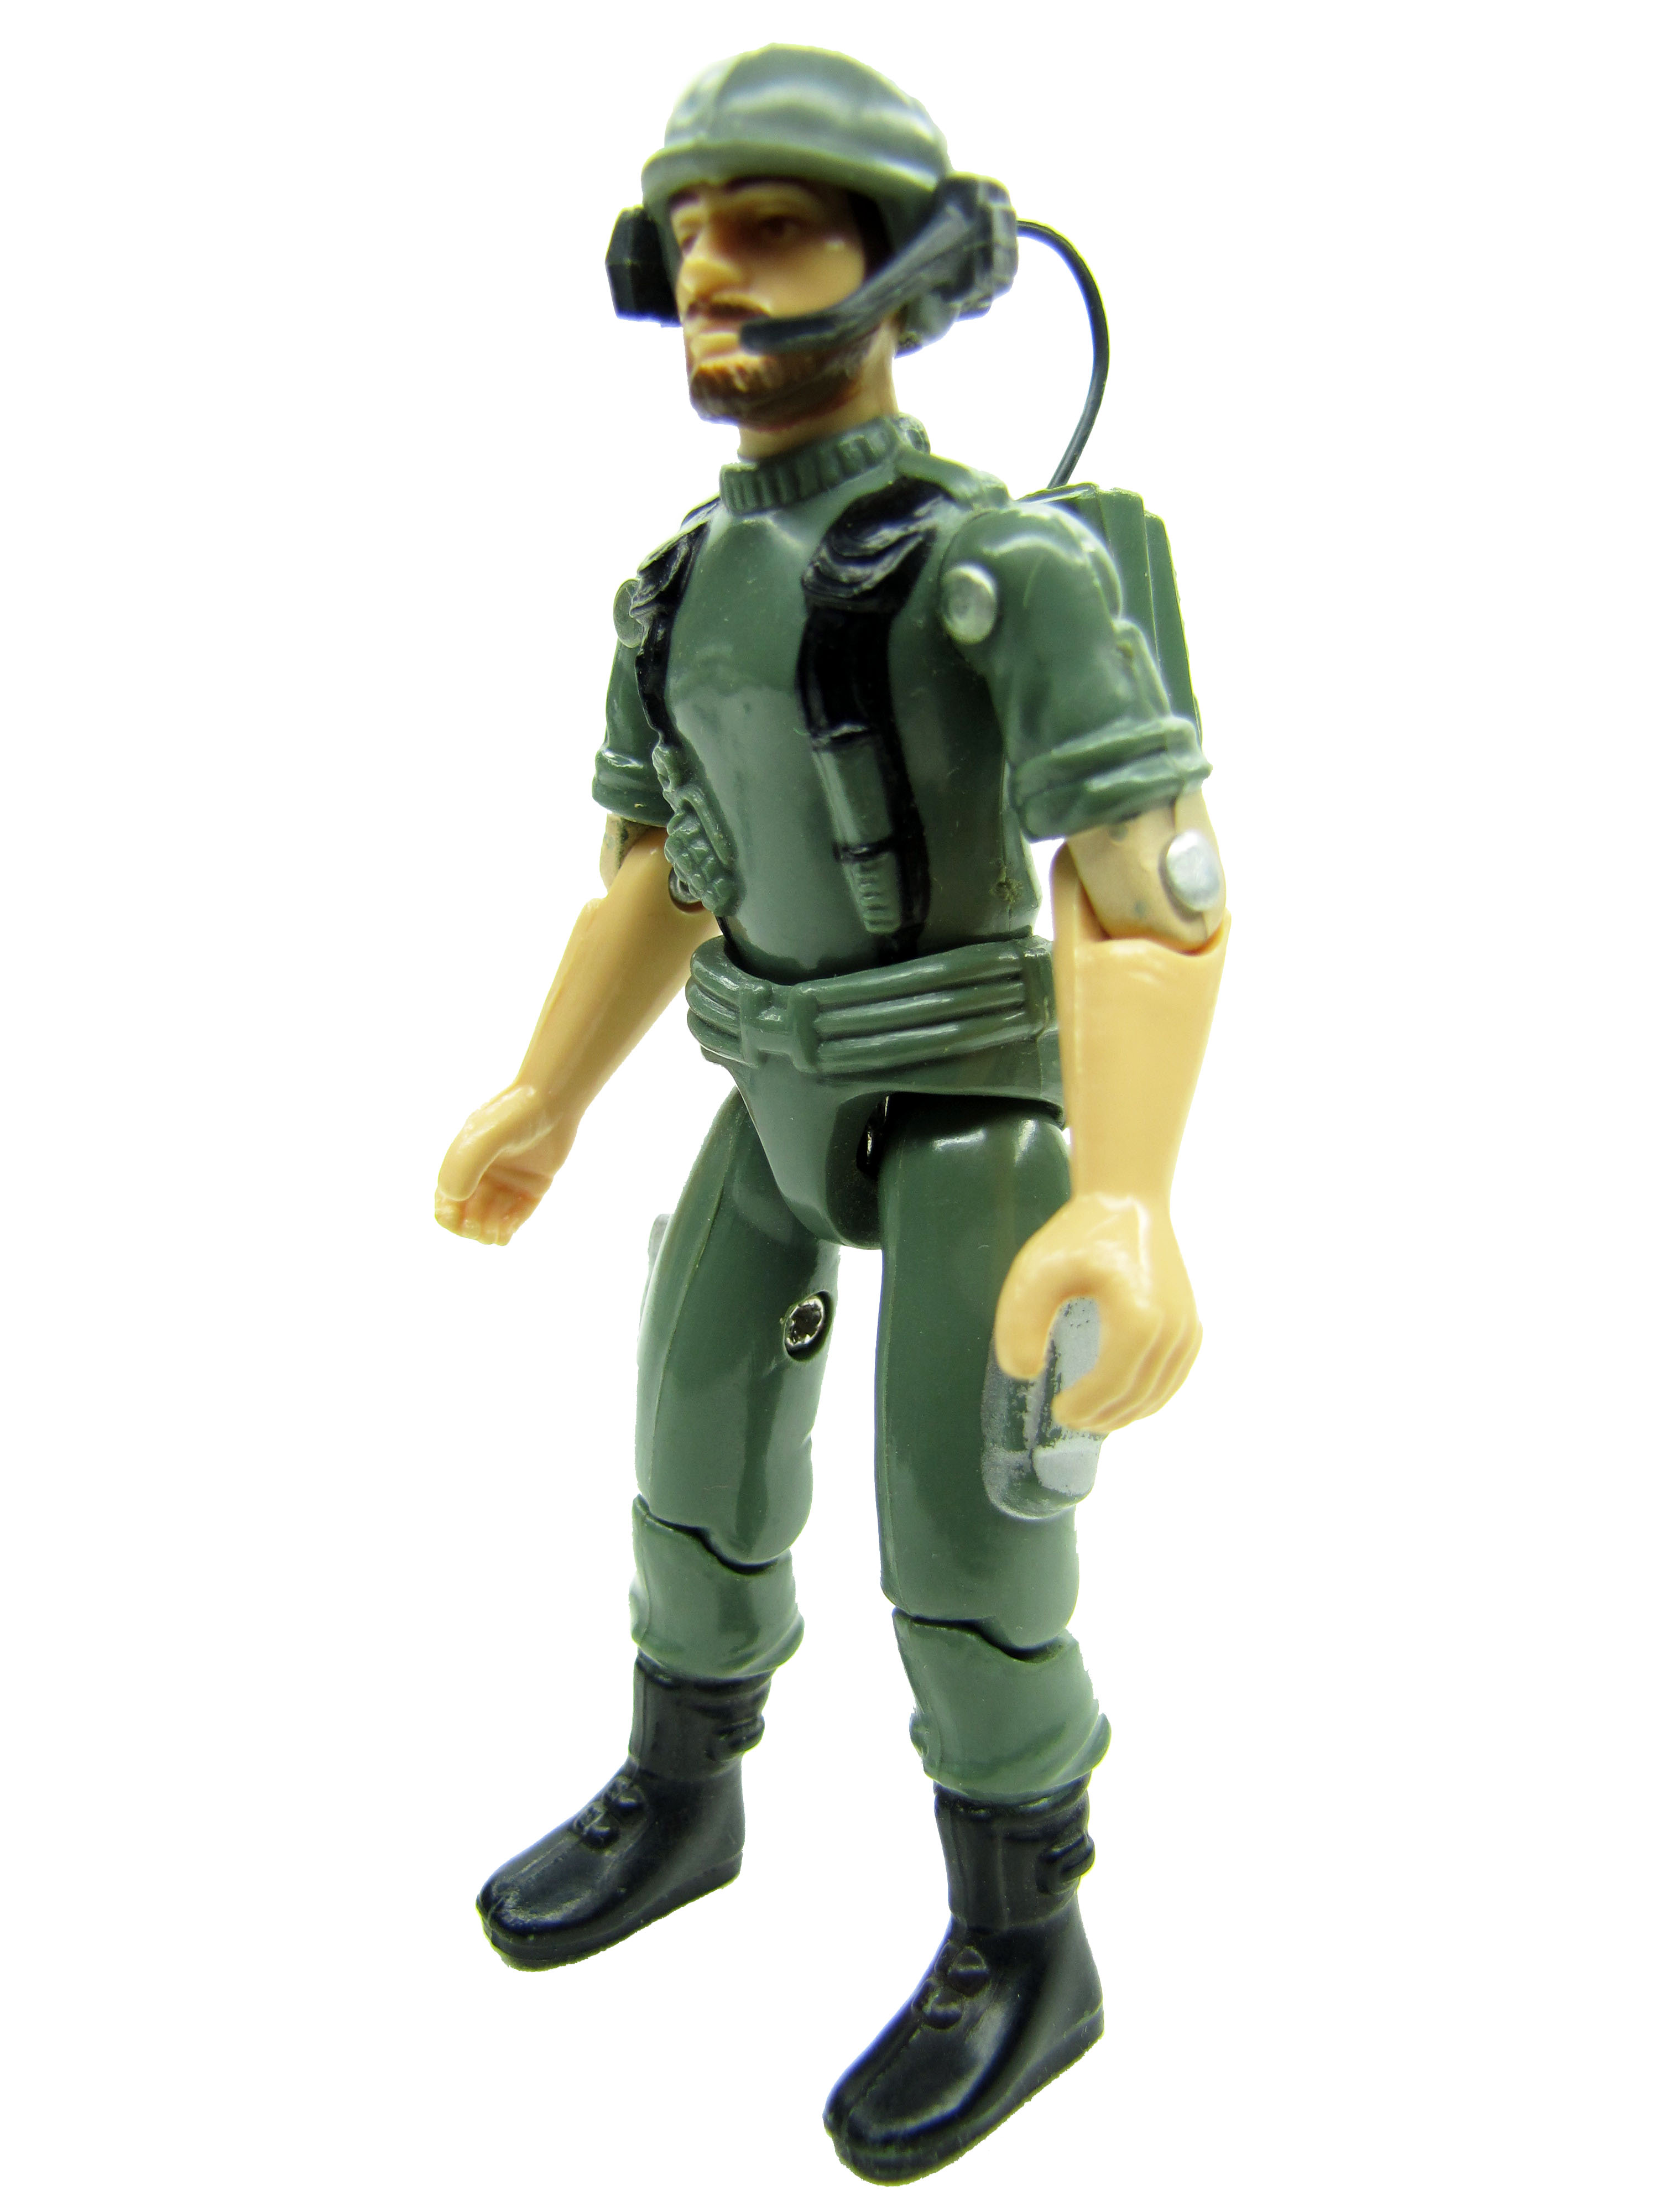 1982 GIJoe BREAKER COMMUNICATIONS OFFICER Complete